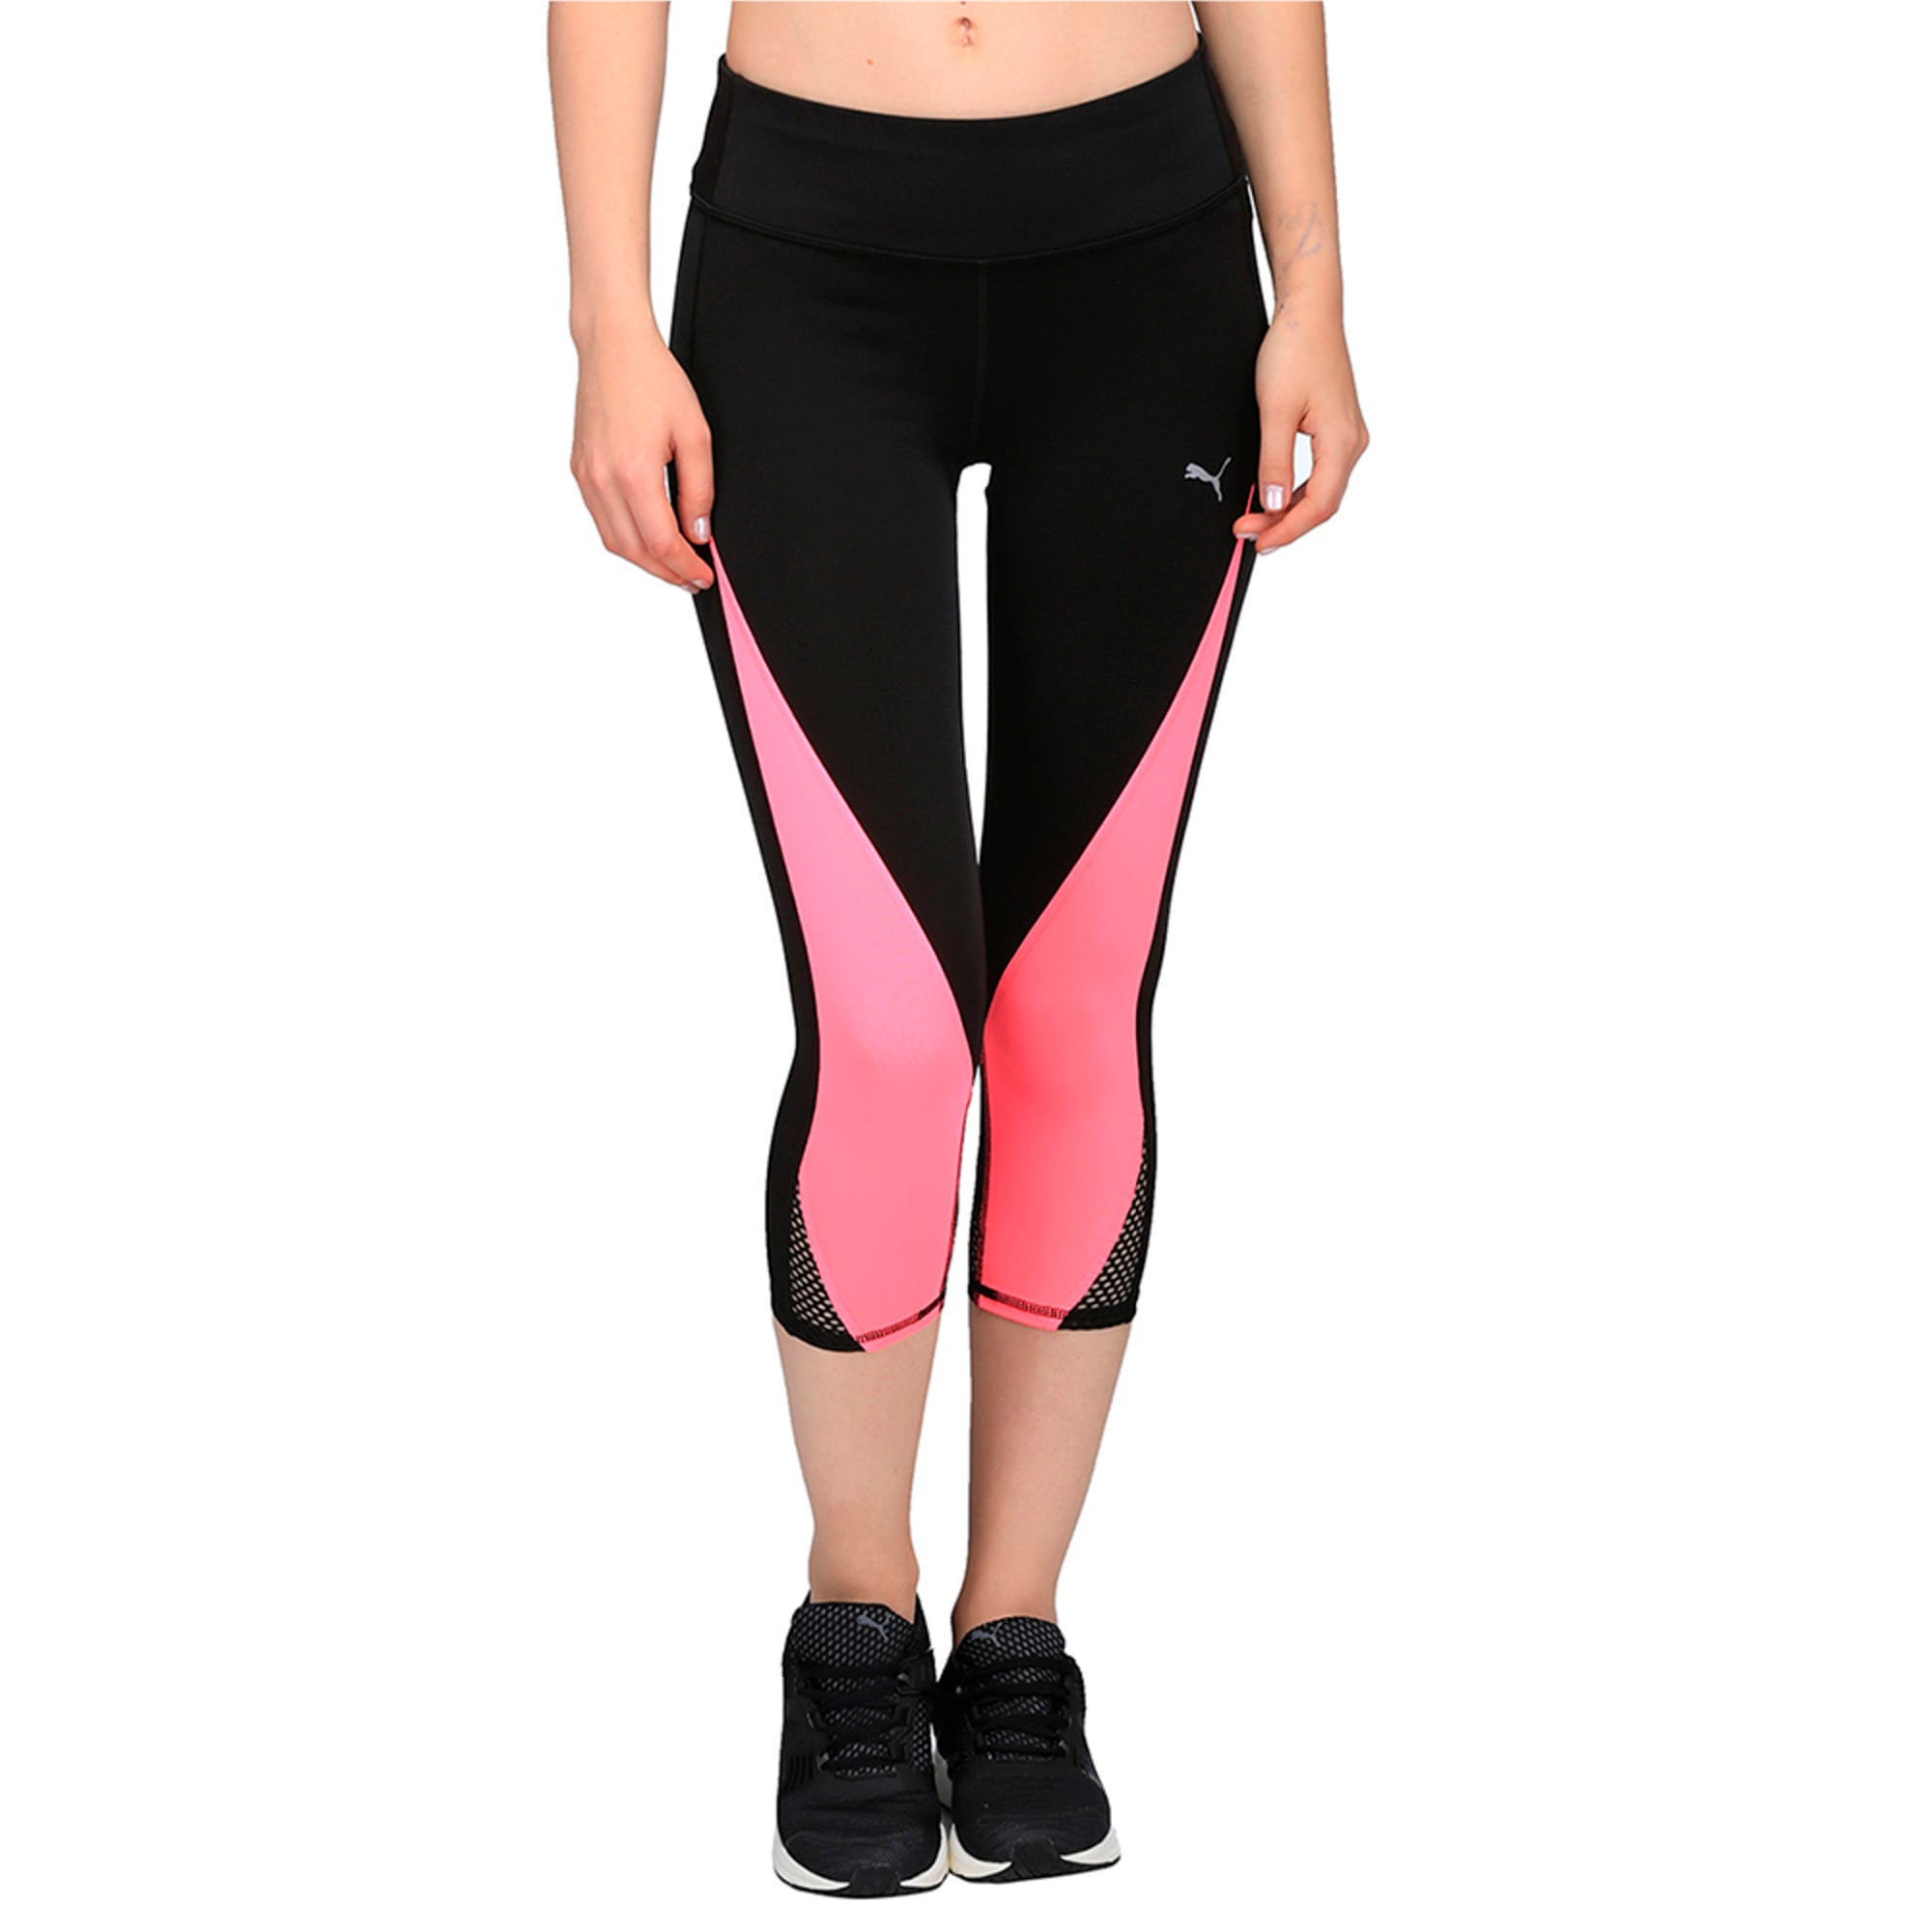 Thumbnail 2 of Active Training Women's Explosive 3/4 Tights, Puma Black-KNOCKOUT PINK, medium-IND